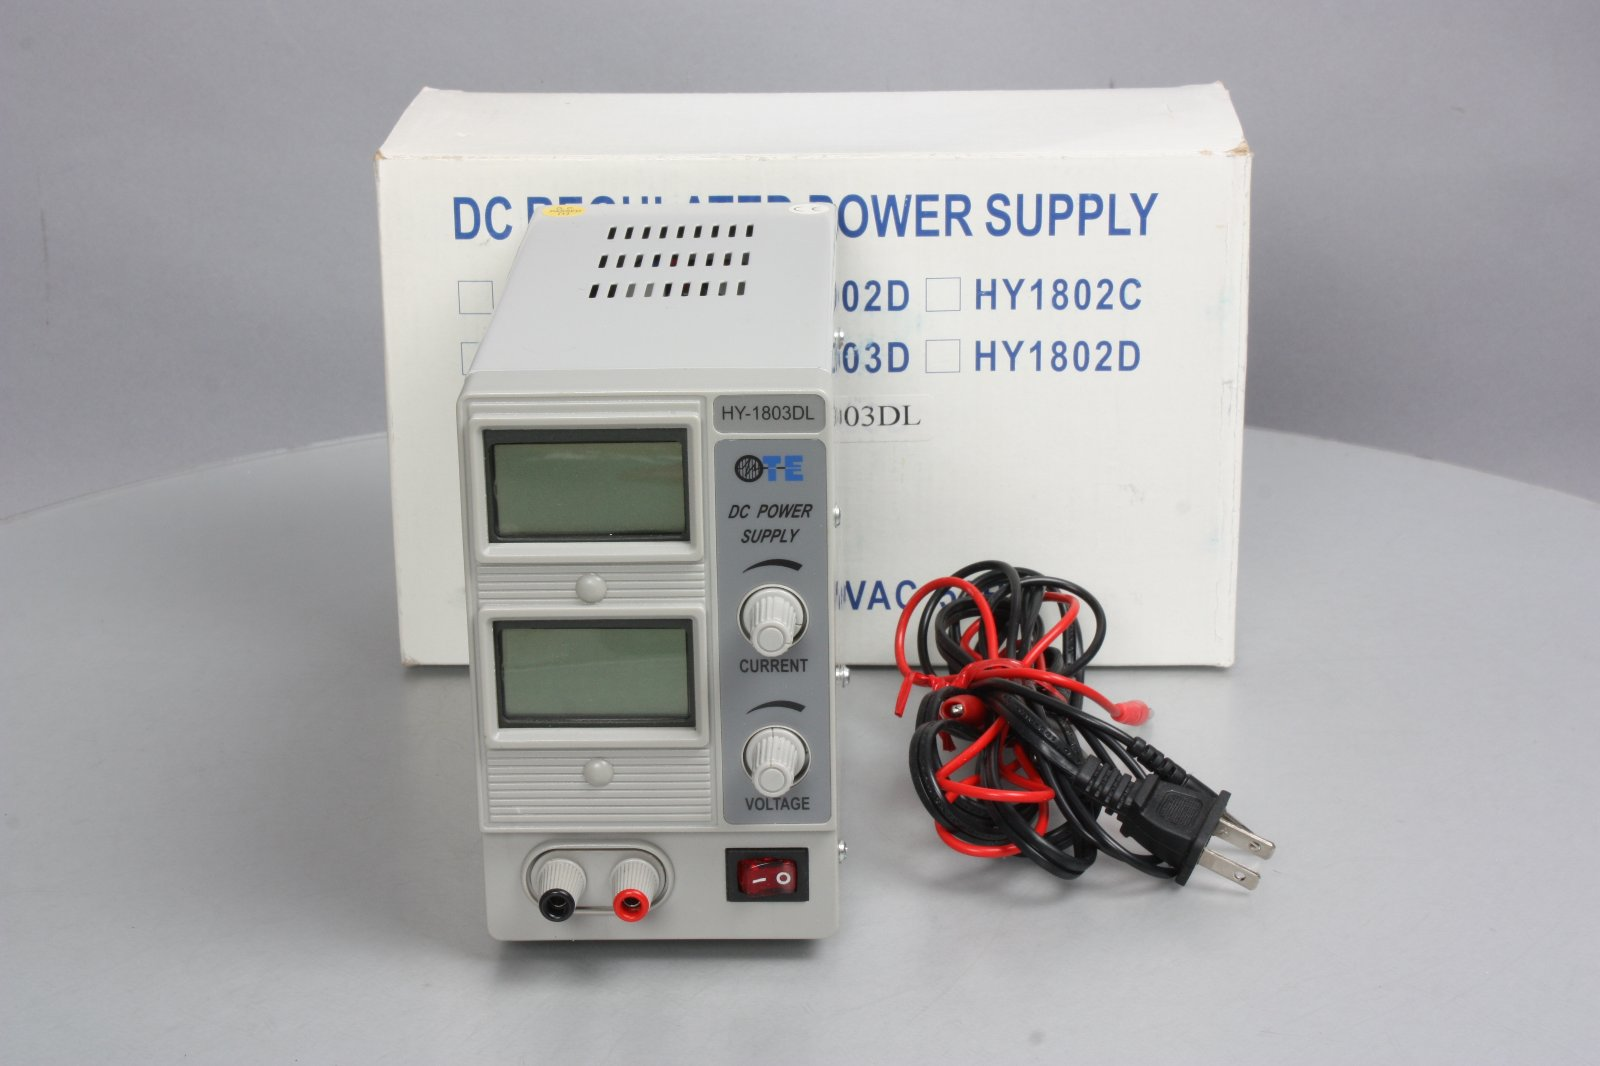 Buy Mastech Hy1803d Variable Dc Power Supply Ln Box Trainz Auctions Photo From Seller